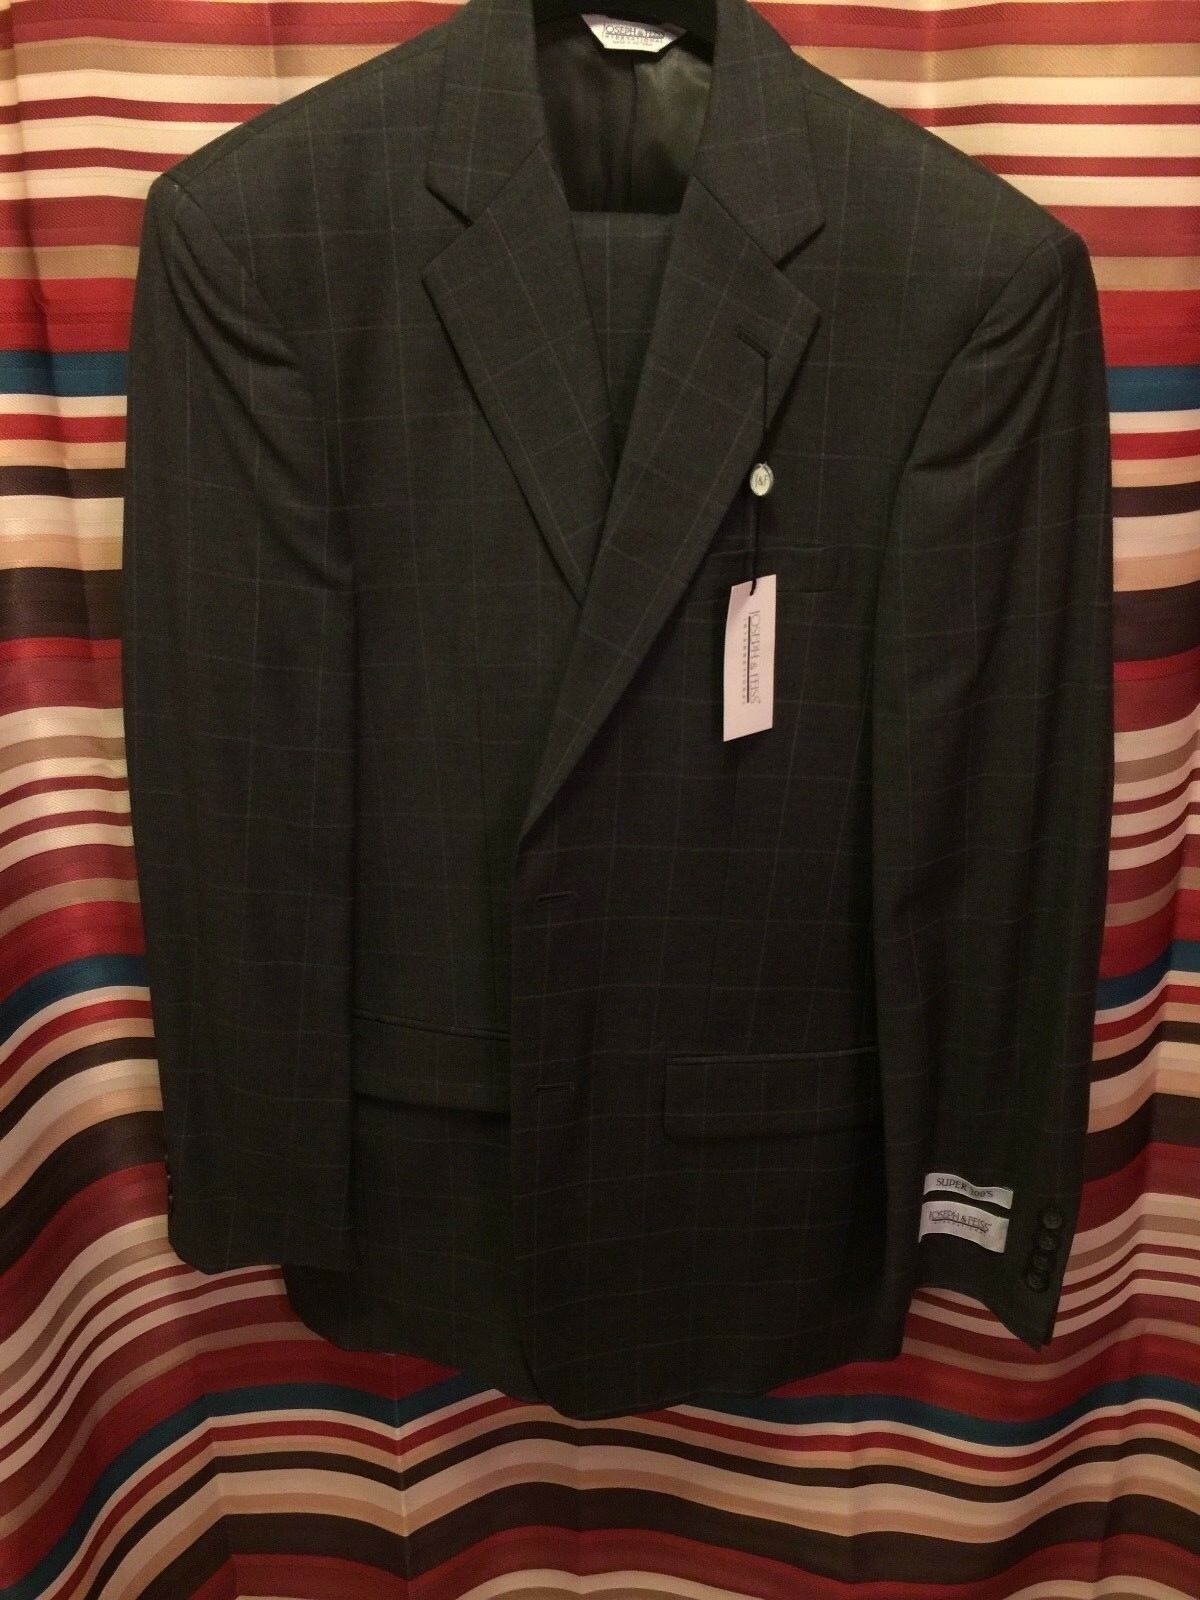 Joseph & Feiss 38L Uomo Charcoal Suit 38L Feiss and 32W Brand Nuovo 40e176